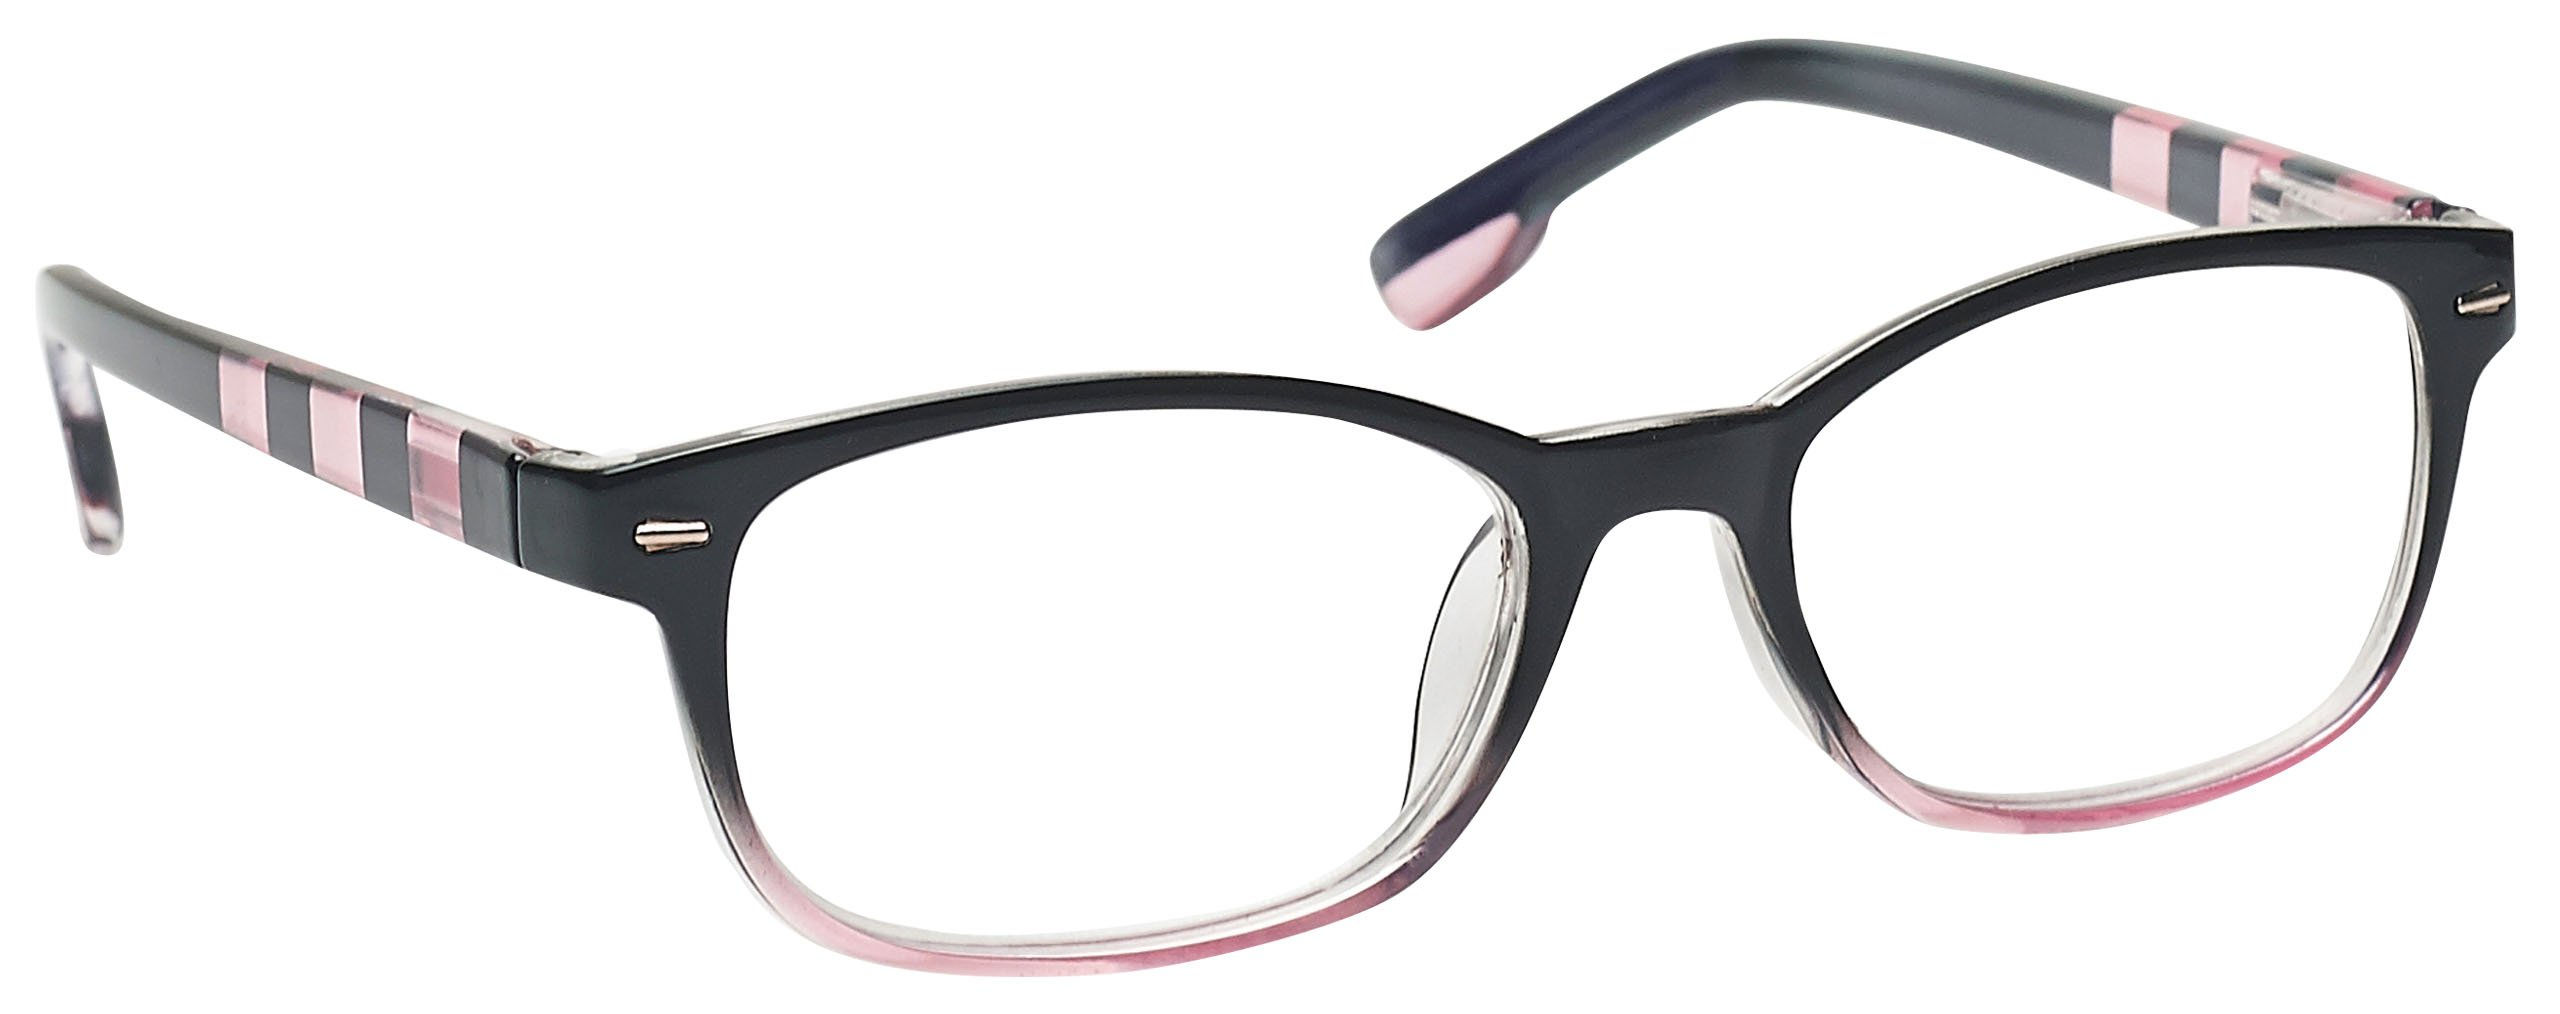 The Reading Glasses Company Black Soft Pink Stripe Readers Womens Ladies R40-4 +1.50